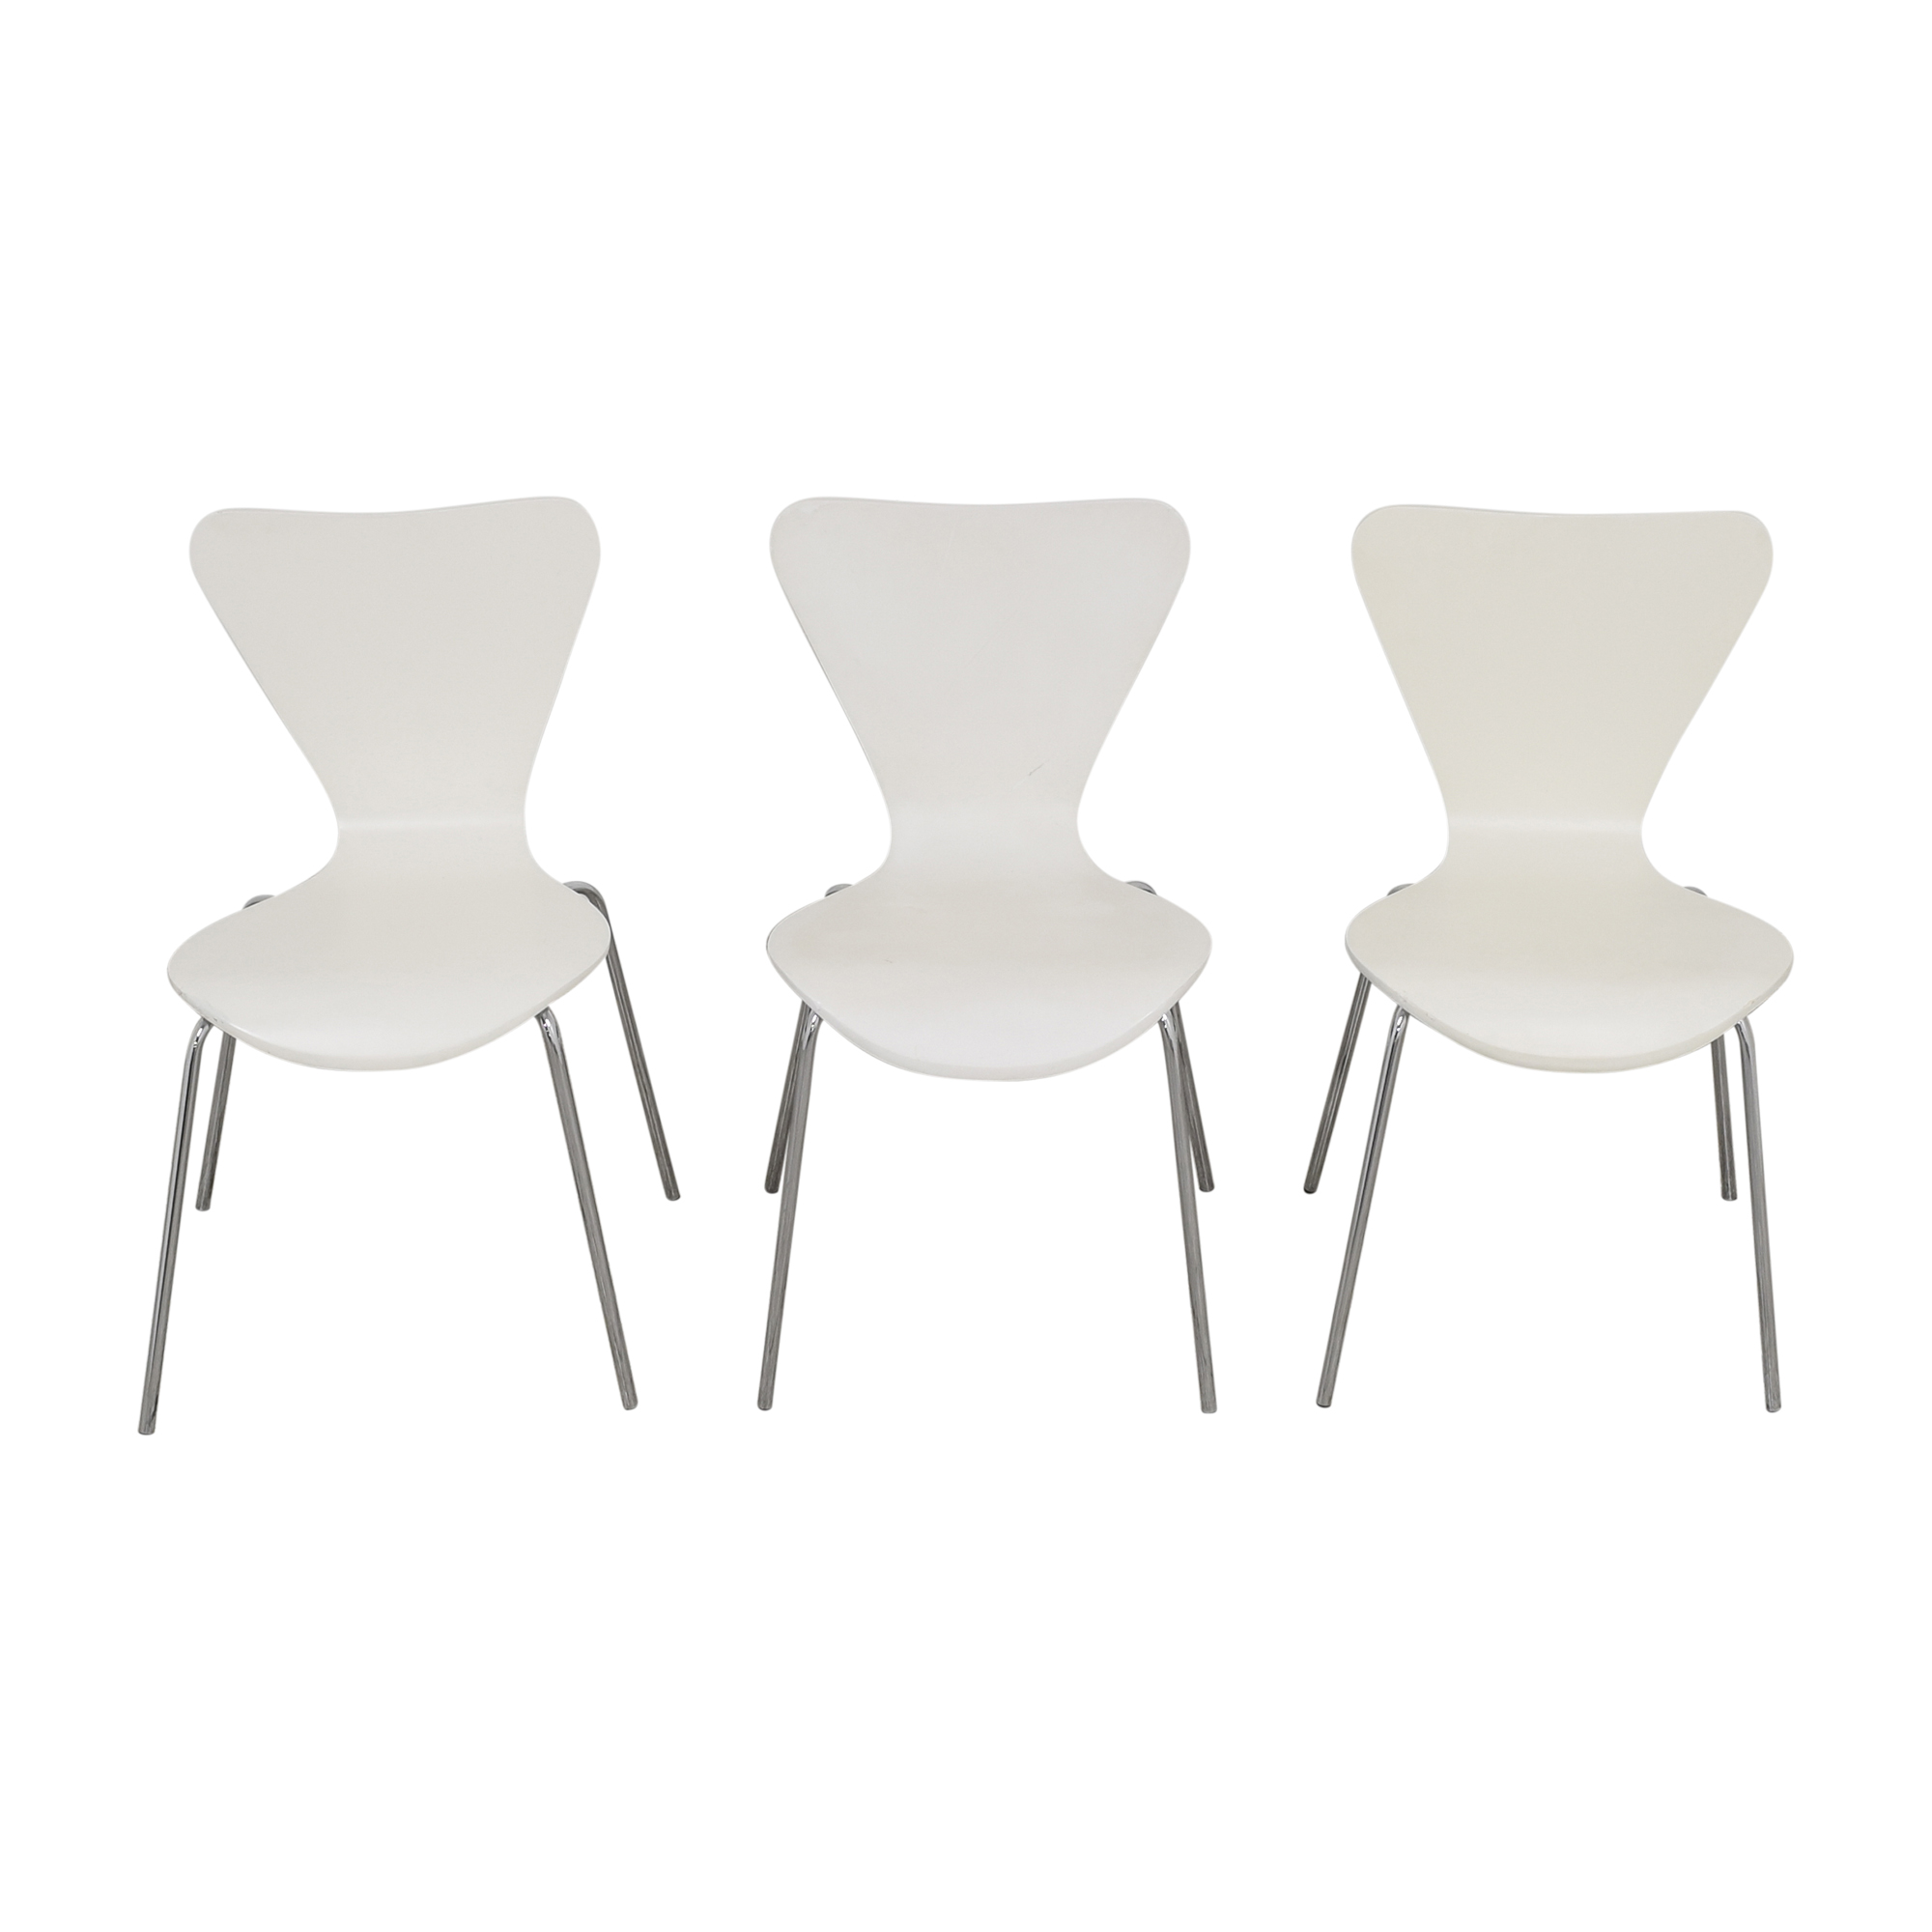 Room & Board Room & Board Jake Dining Chairs Dining Chairs